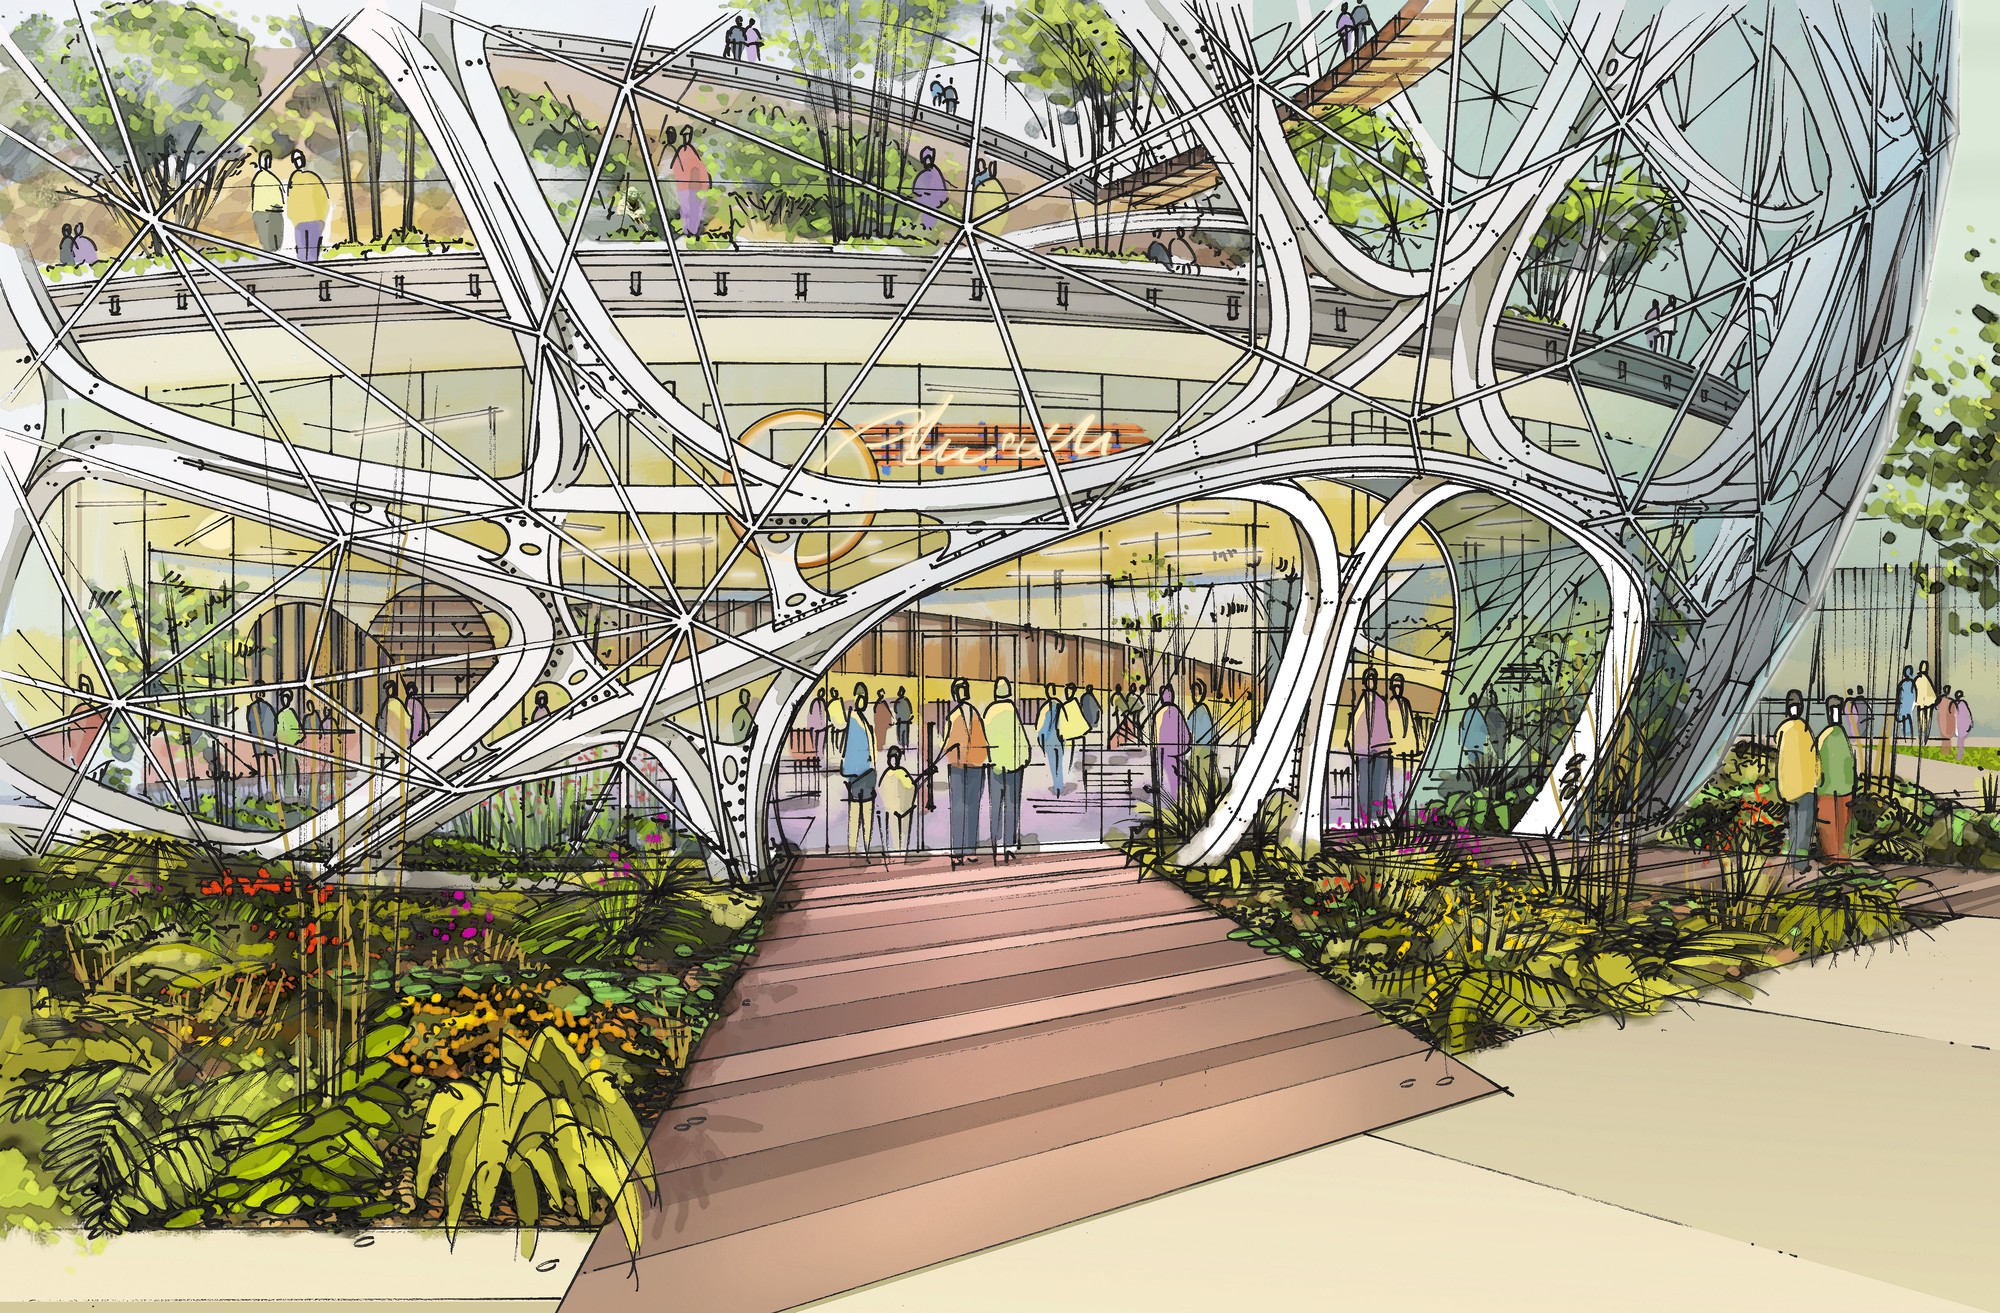 Nbbj S Biodome For Amazon Approved By Seattle Design Board Archdaily